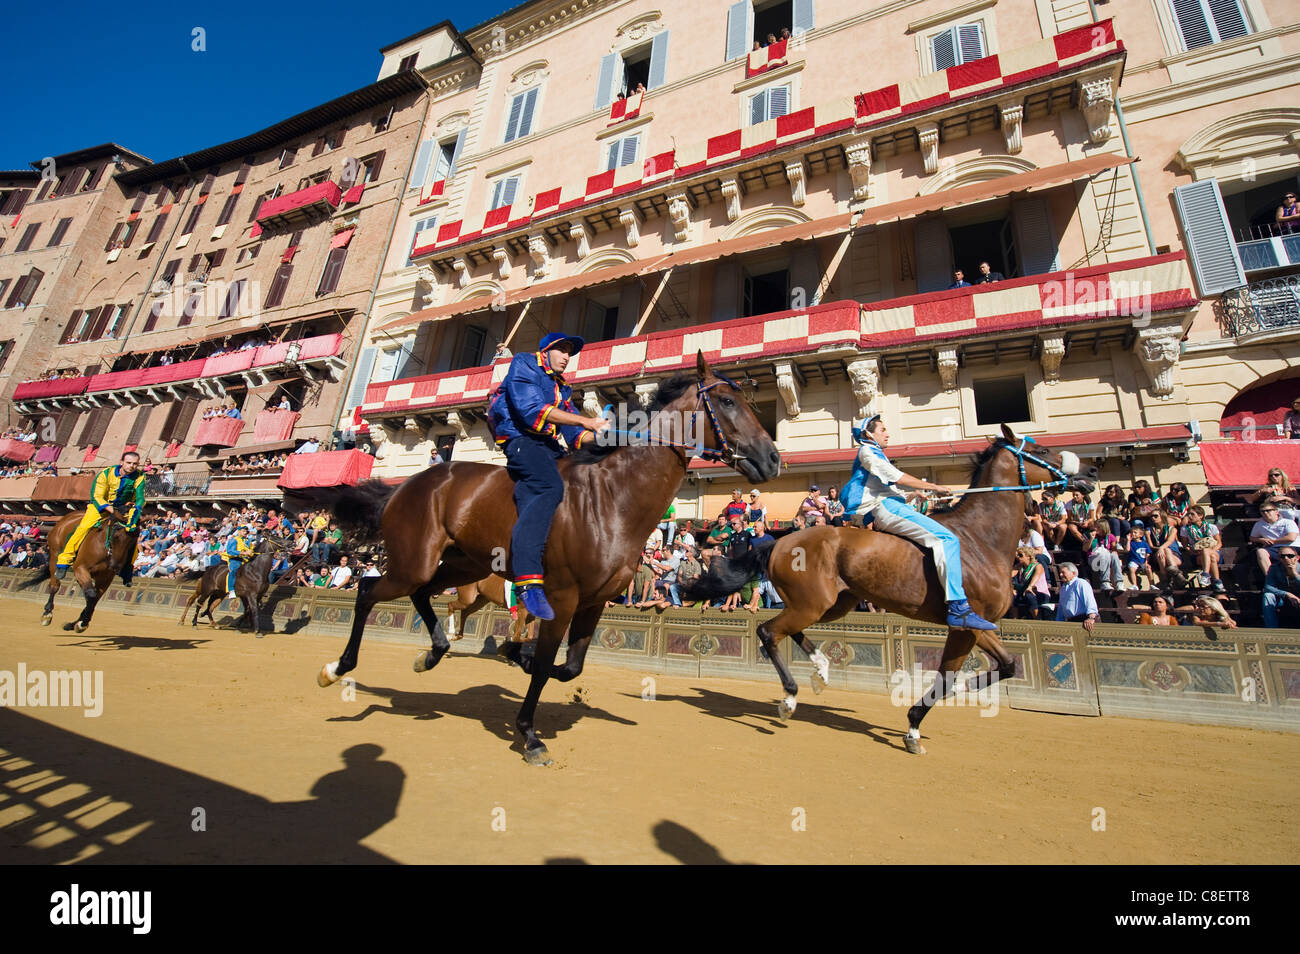 Riders racing at El Palio horse race festival, Piazza del Campo, Siena, Tuscany, Italy - Stock Image